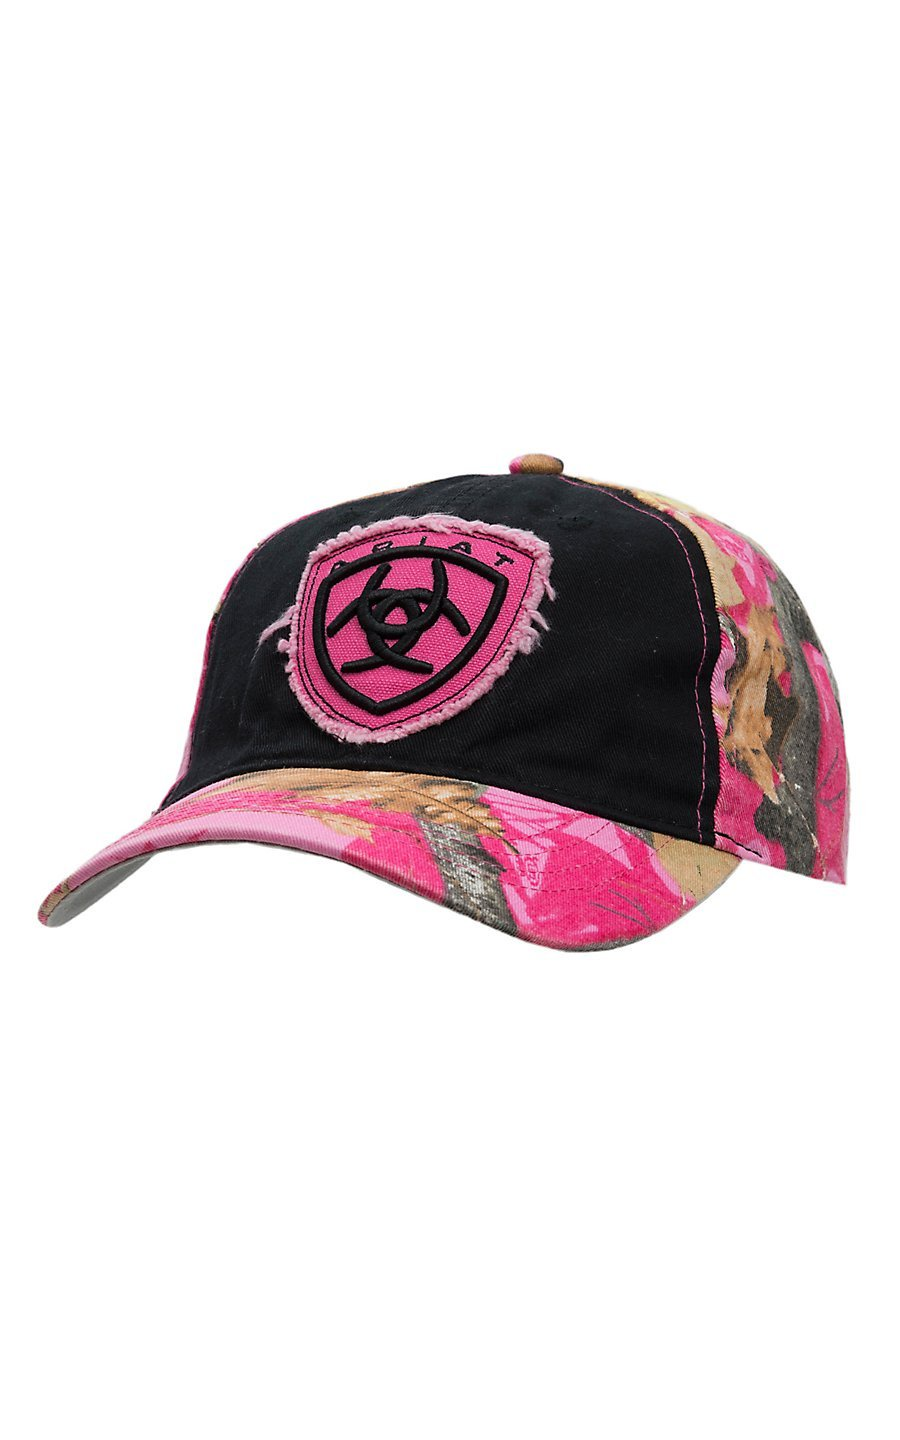 0f641a1e212e4 ... germany ariat womens black and pink camo embroidered logo cap b61f3  8255b